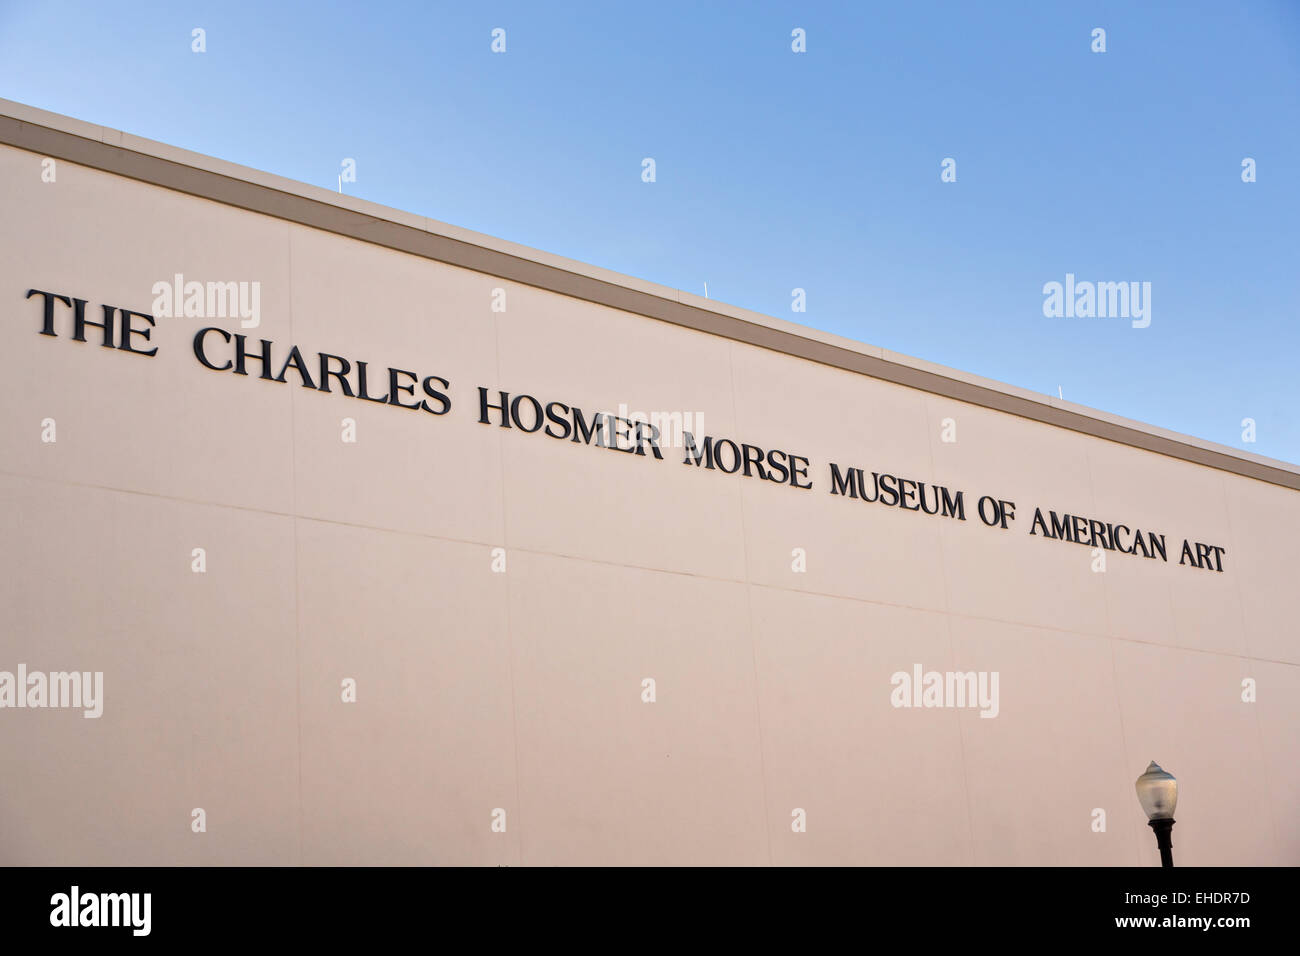 The Charles Hosmer Morse Museum in historic downtown Winter Park, Florida. - Stock Image